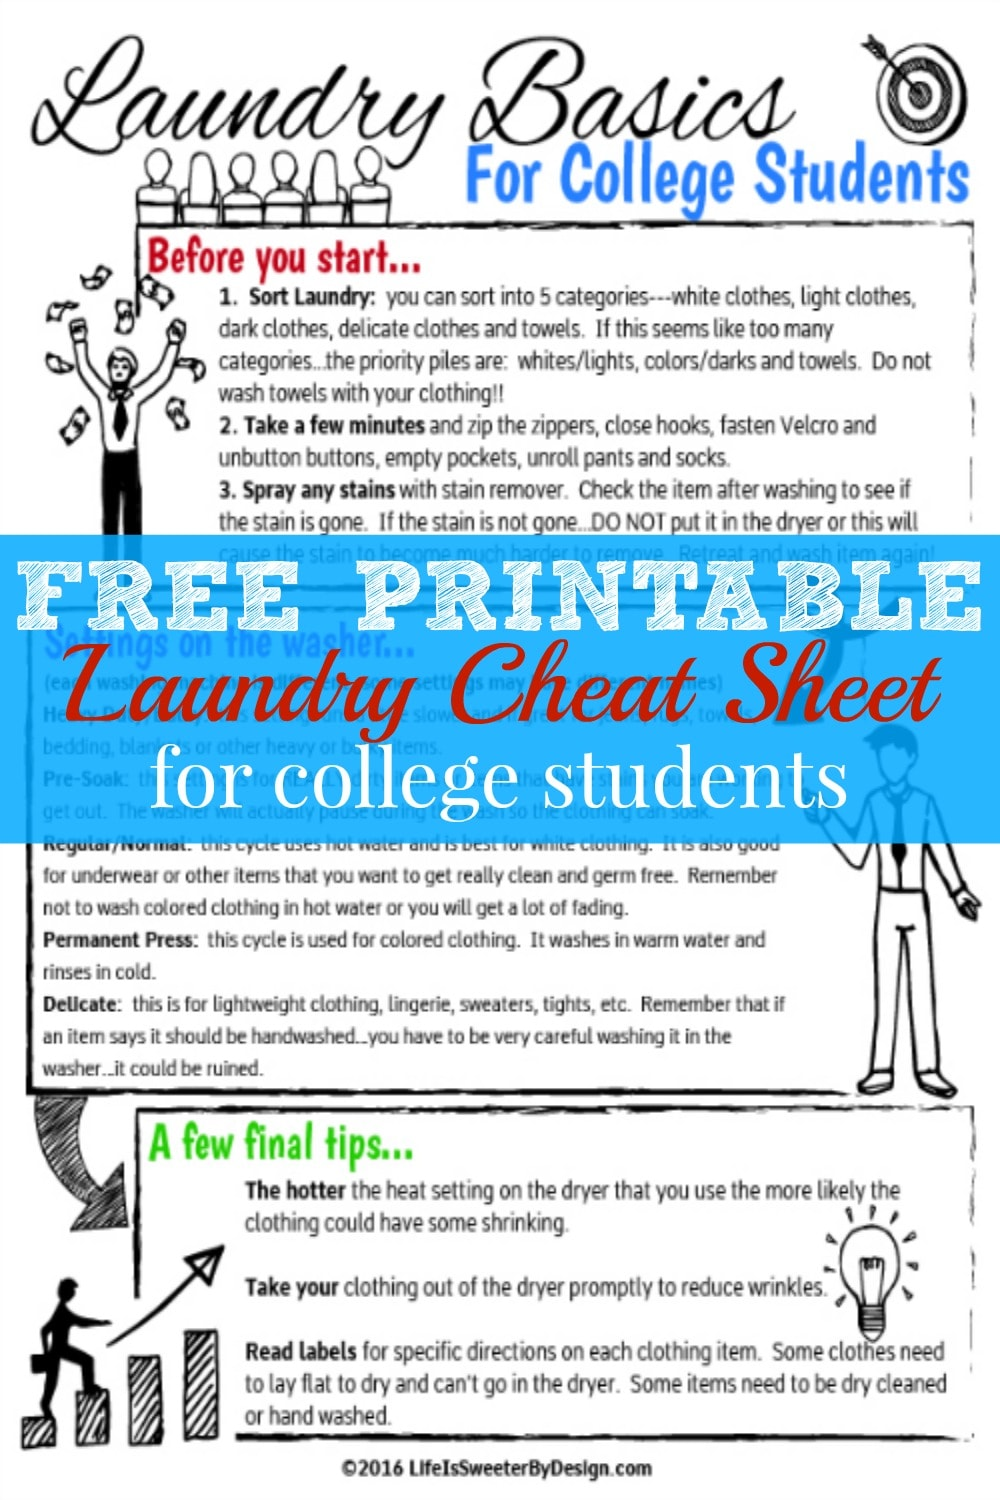 Is your child getting ready to head off to college? Get them ready to do their own laundry with a free printable laundry cheat sheet for college students!